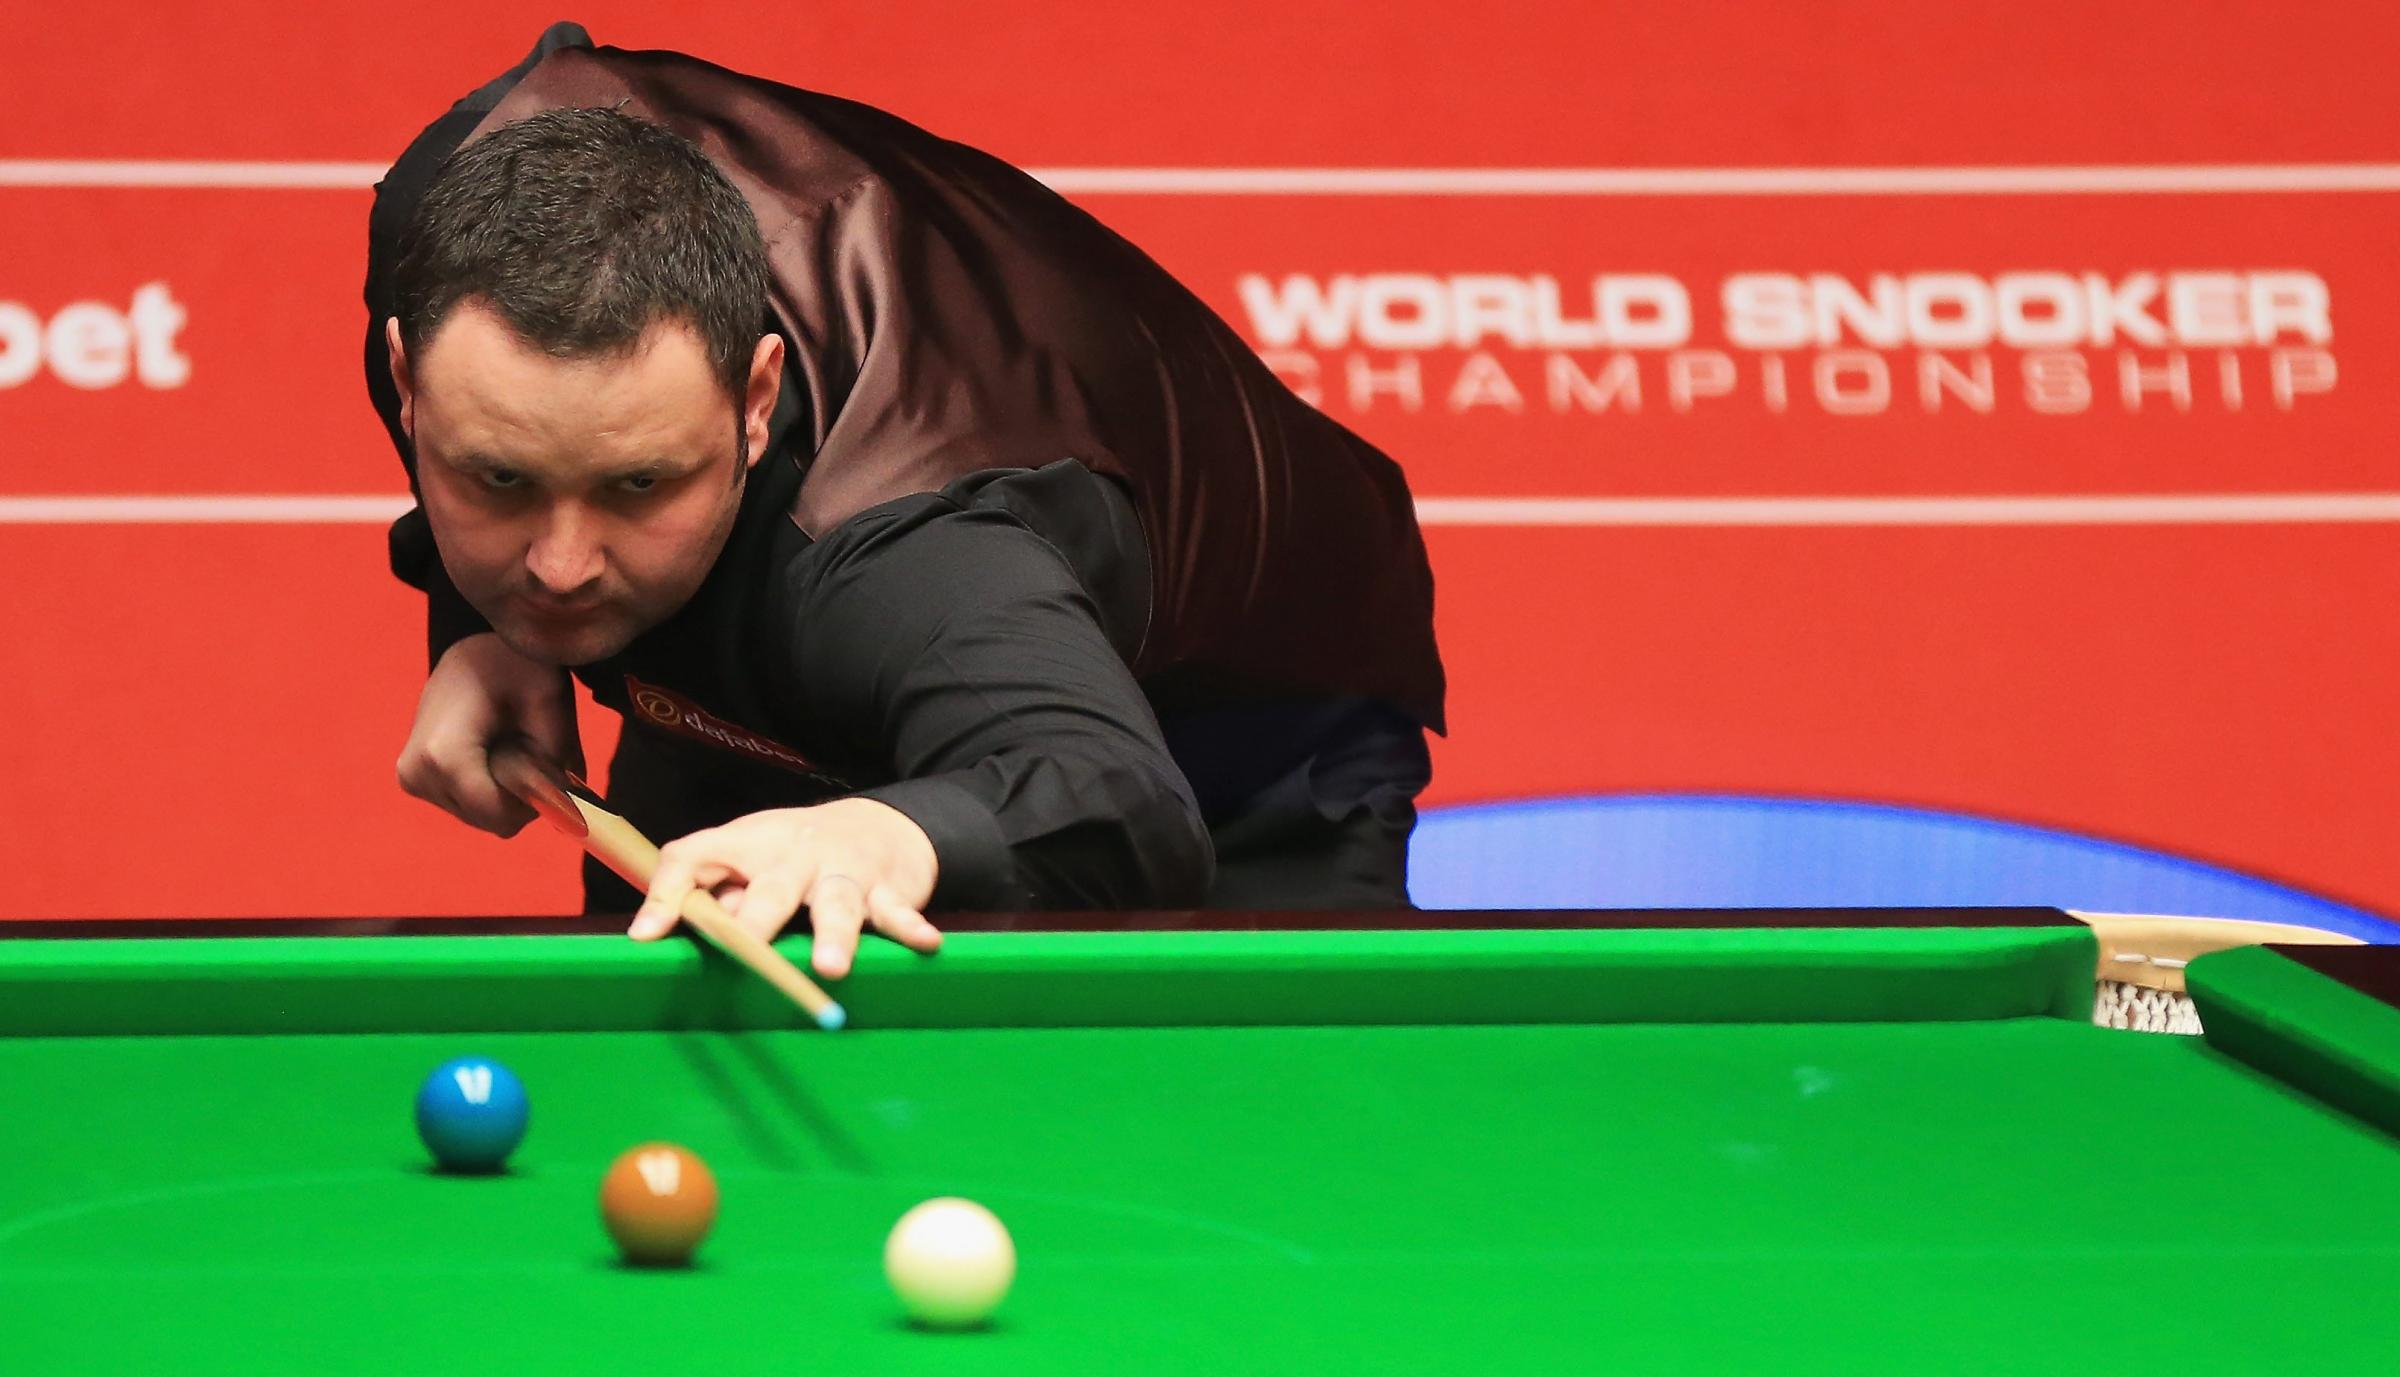 SHEFFIELD, ENGLAND - APRIL 19:  Stephen Maguire of Scotland in action against Ryan Day of Wales during day one of the The Dafabet World Snooker Championship at Crucible Theatre on April 19, 2014 in Sheffield, England.  (Photo by Matthew Lewis/Getty Images